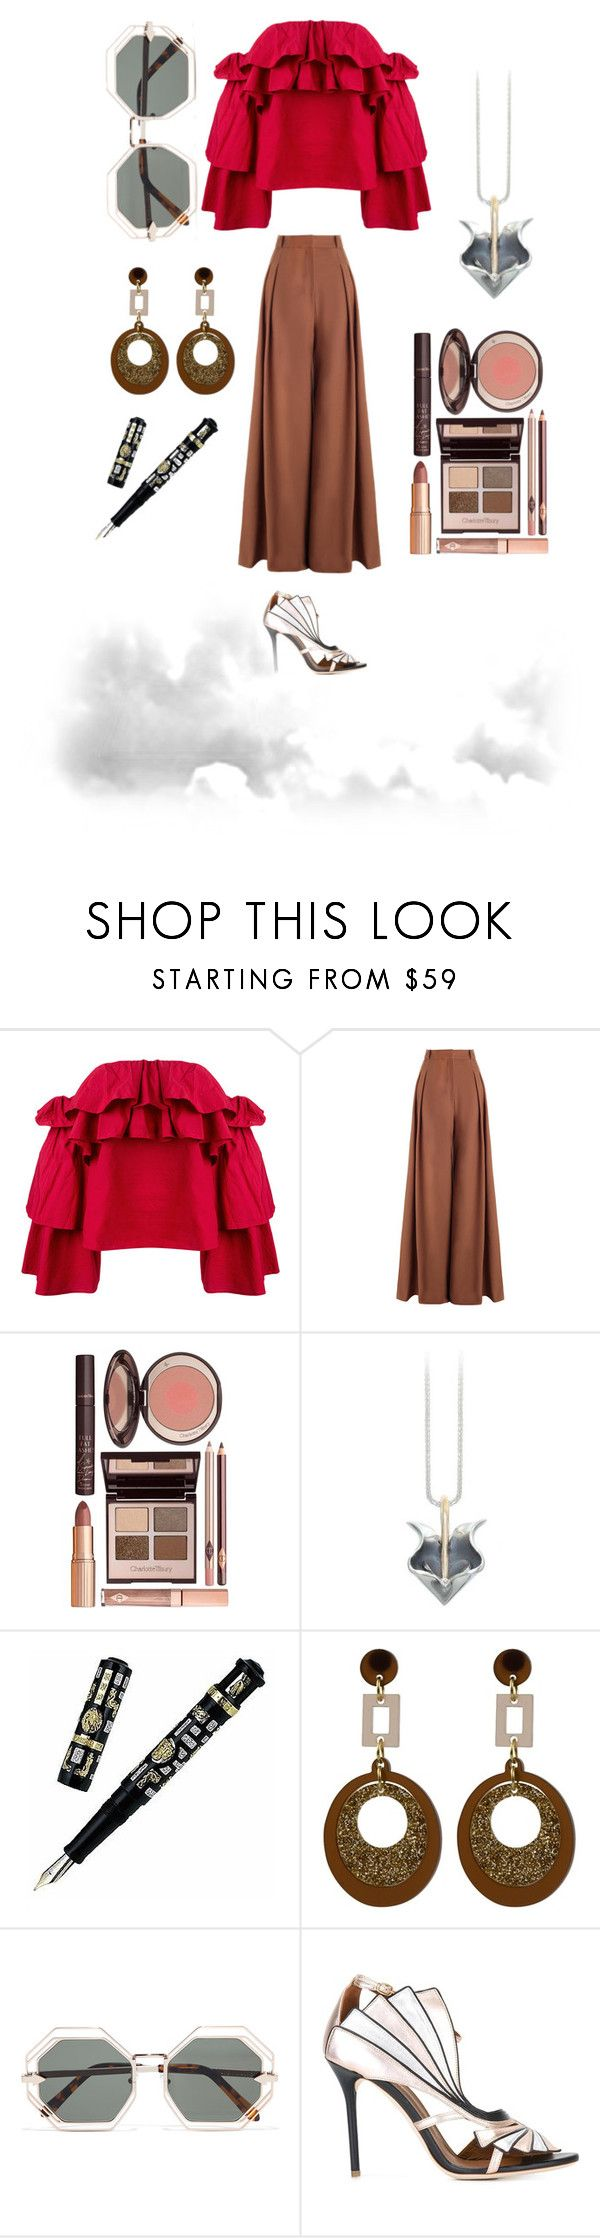 """""""A bit of Vintage"""" by norajox-kim ❤ liked on Polyvore featuring Erika Cavallini Semi-Couture, Zimmermann, Charlotte Tilbury, Visconti, Toolally, Karen Walker, Malone Souliers, vintage and notsponsored"""